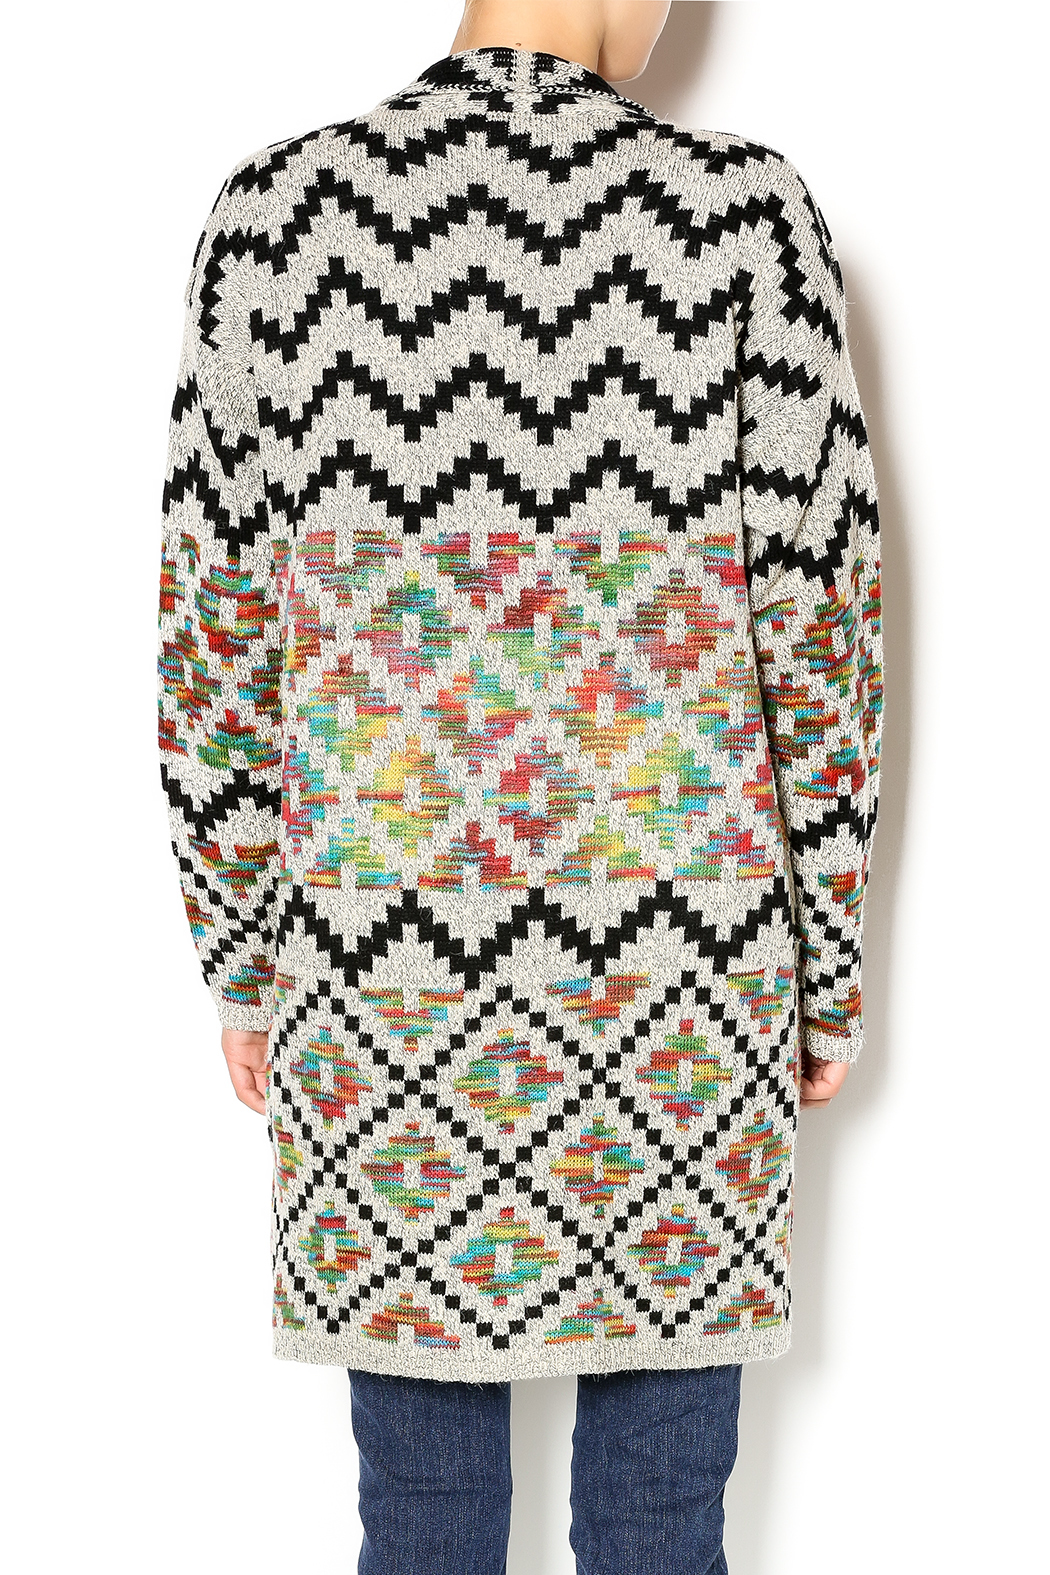 Shop womens sweaters & cardigans cheap sale online, you can buy knit sweaters, wool cardigans, cashemere sweaters and black cardigans for women at wholesale prices on tiodegwiege.cf FREE Shipping available worldwide. Casual Style Collarless Long Sleeve Colorful Stripe Cardigan For Women - Green - M. Hollow Out Design Long Sleeve.